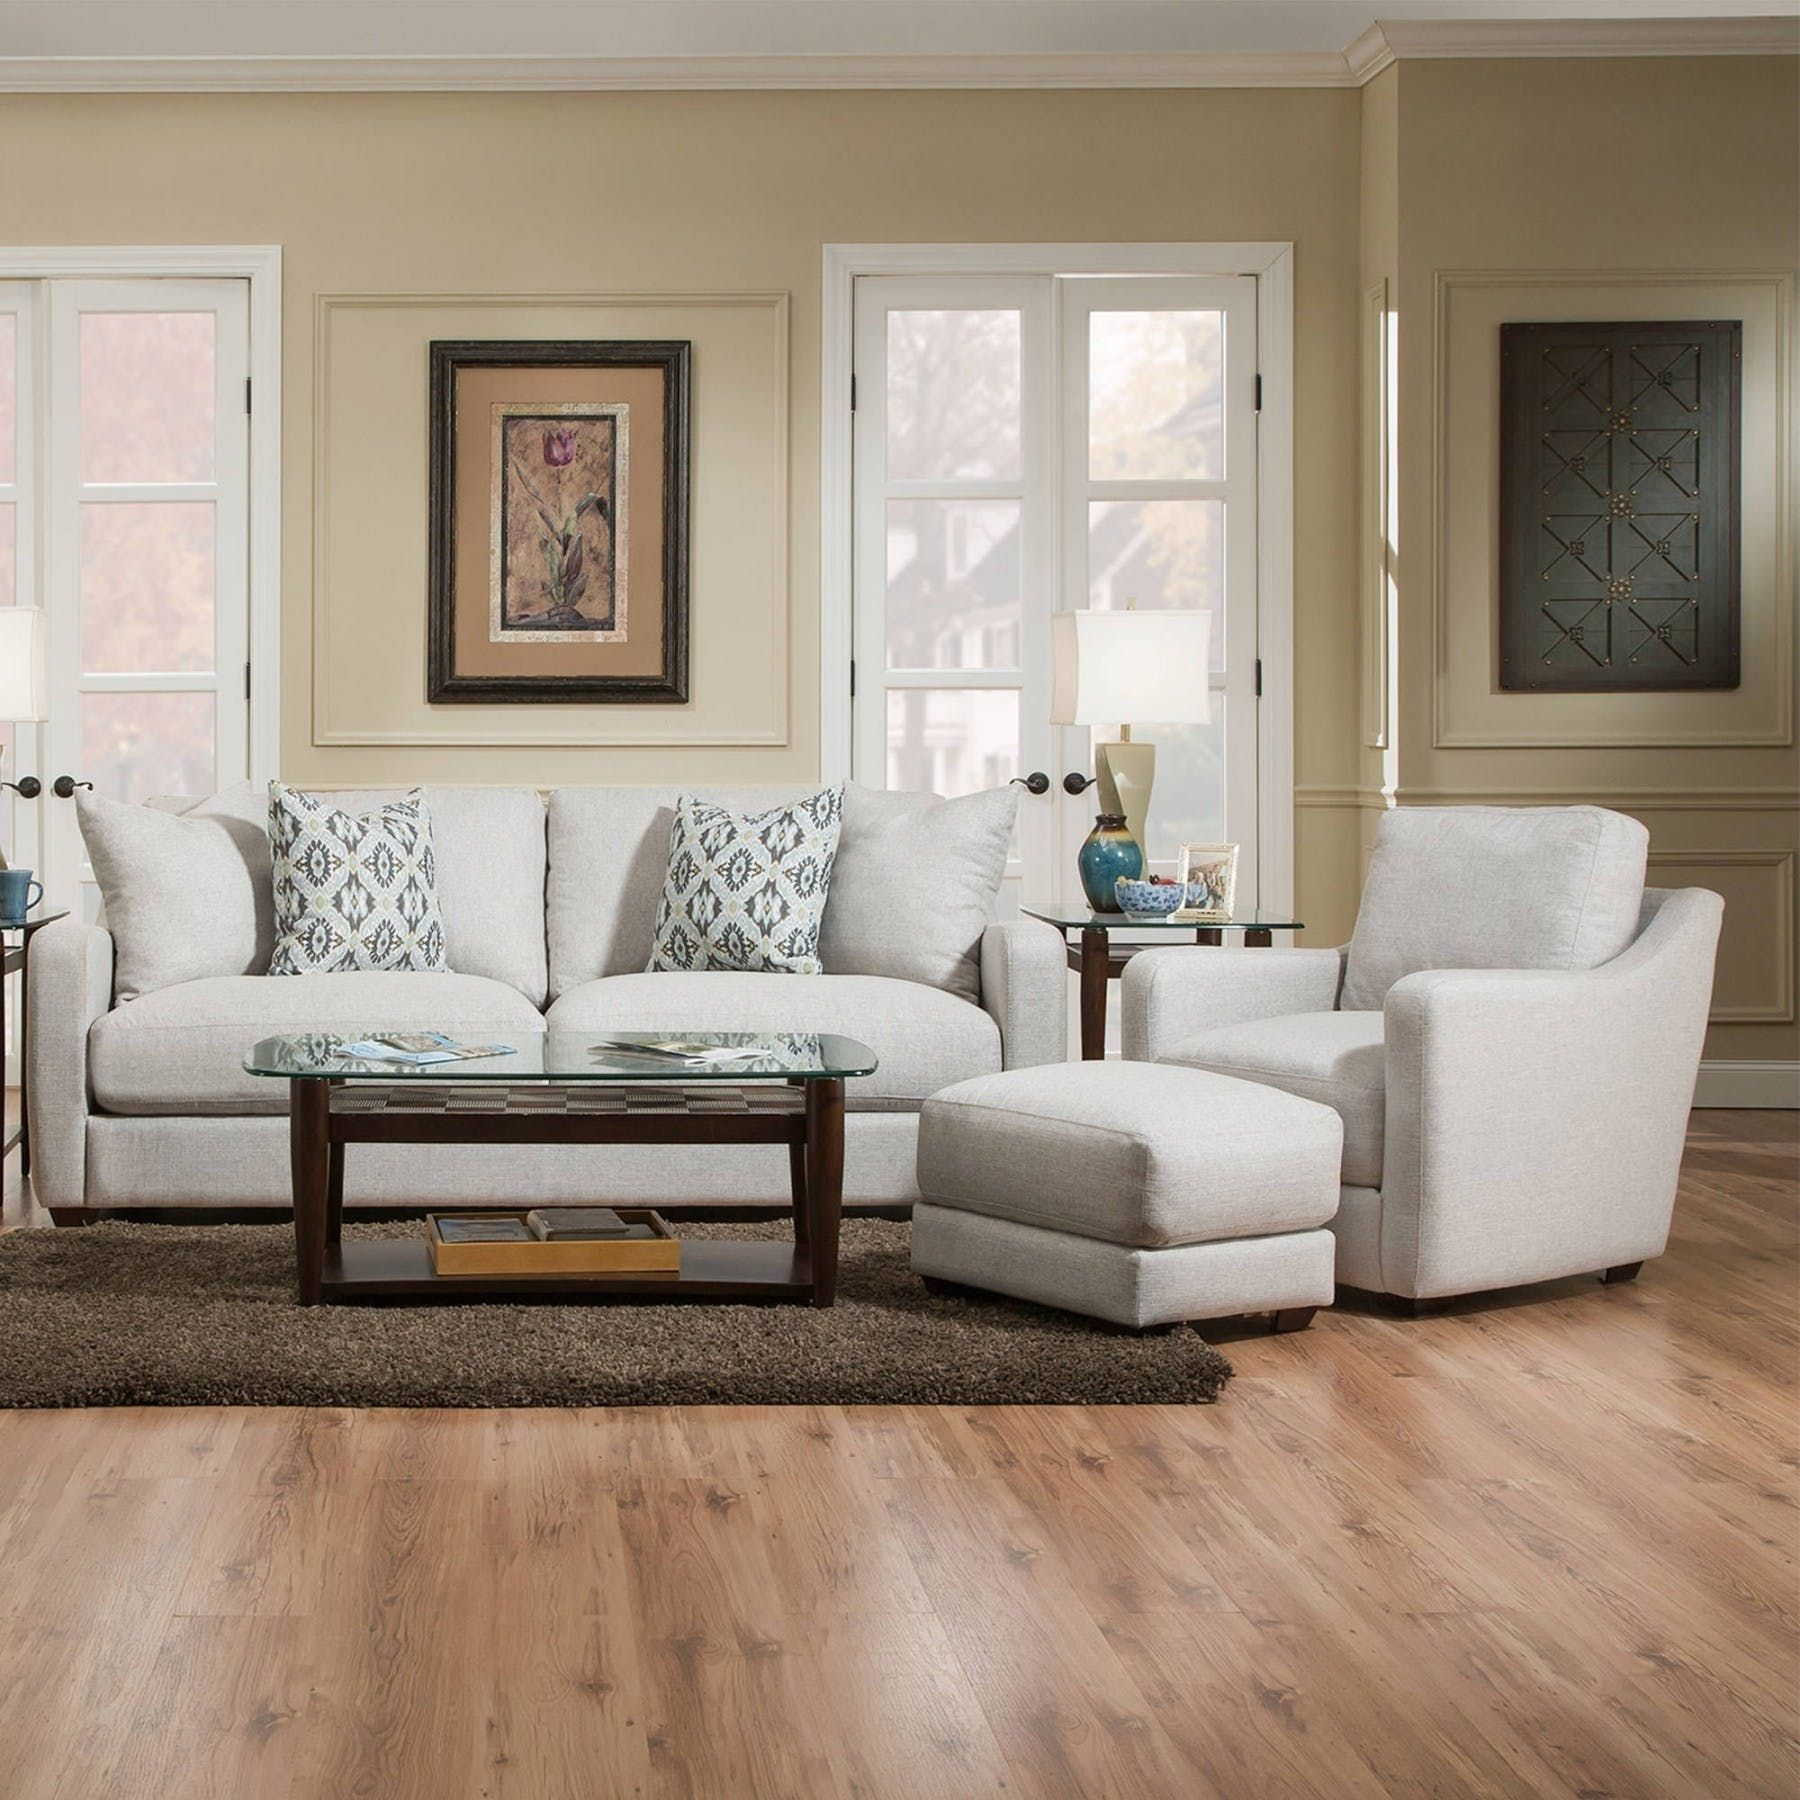 Best Como Sofa Fabric Sofas Living Room Bernie Phyl's Furniture By Franklin Corp 400 x 300